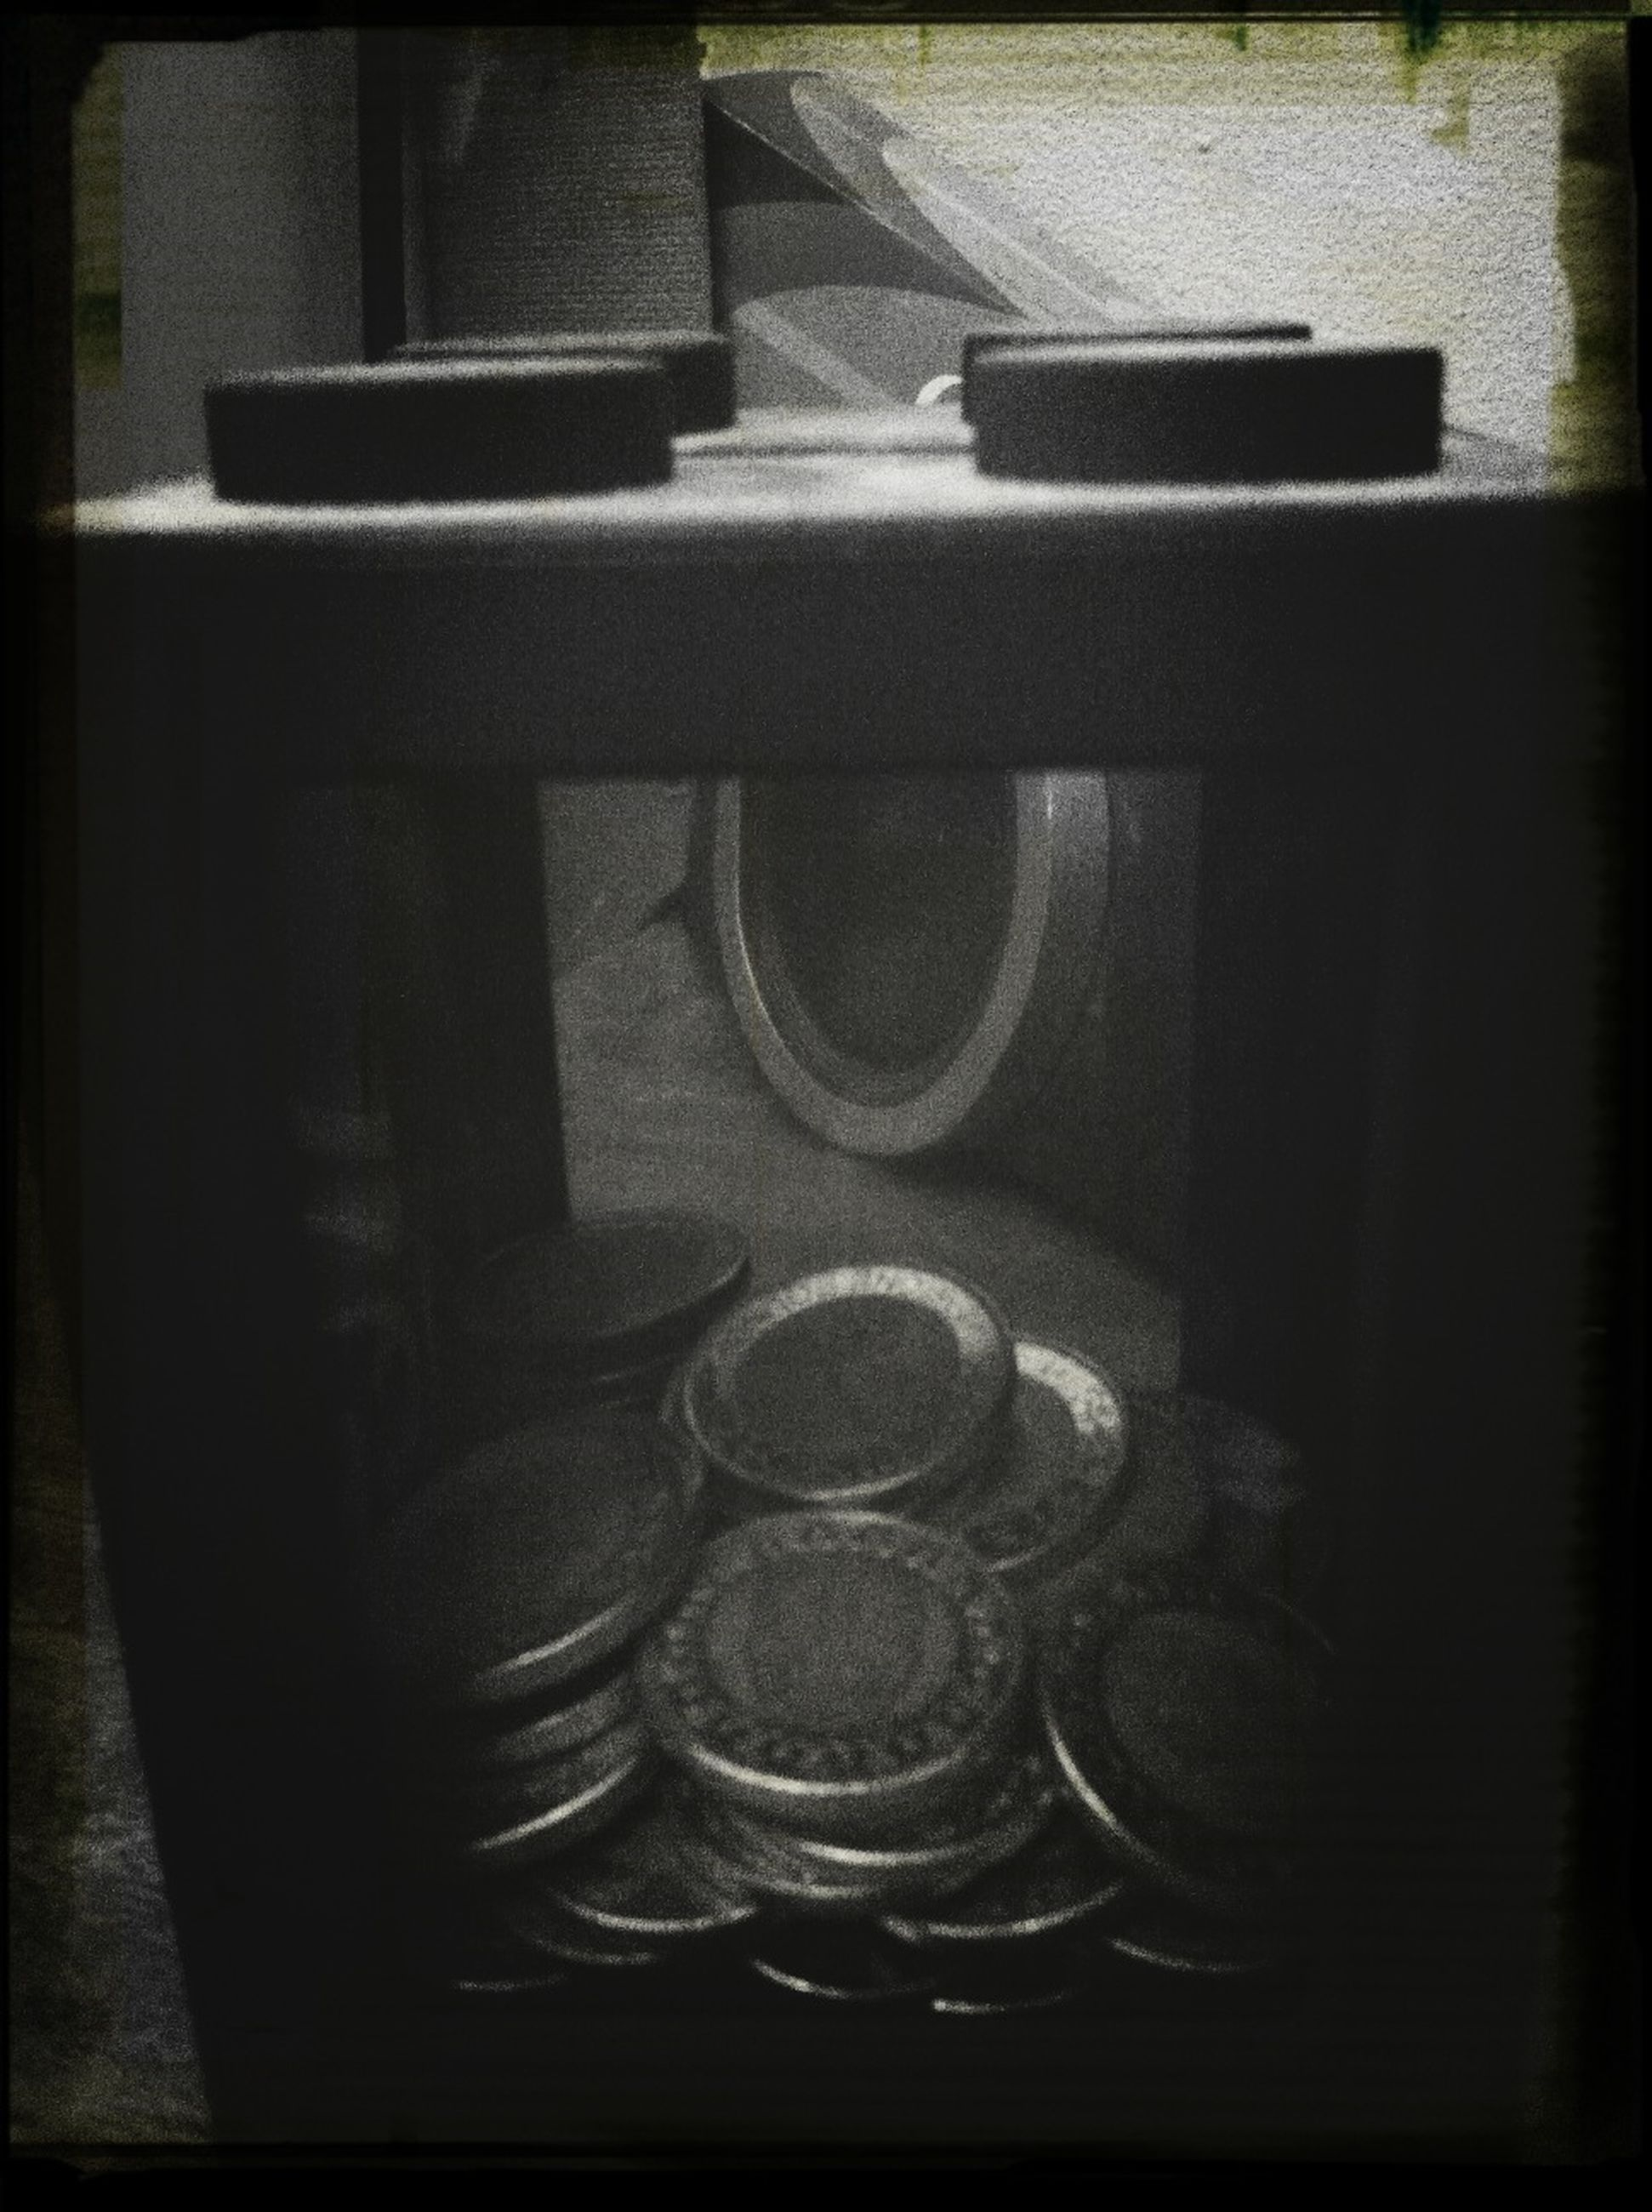 transfer print, indoors, auto post production filter, close-up, metal, high angle view, no people, still life, table, technology, old-fashioned, metallic, glass - material, day, reflection, transportation, handle, window, retro styled, old